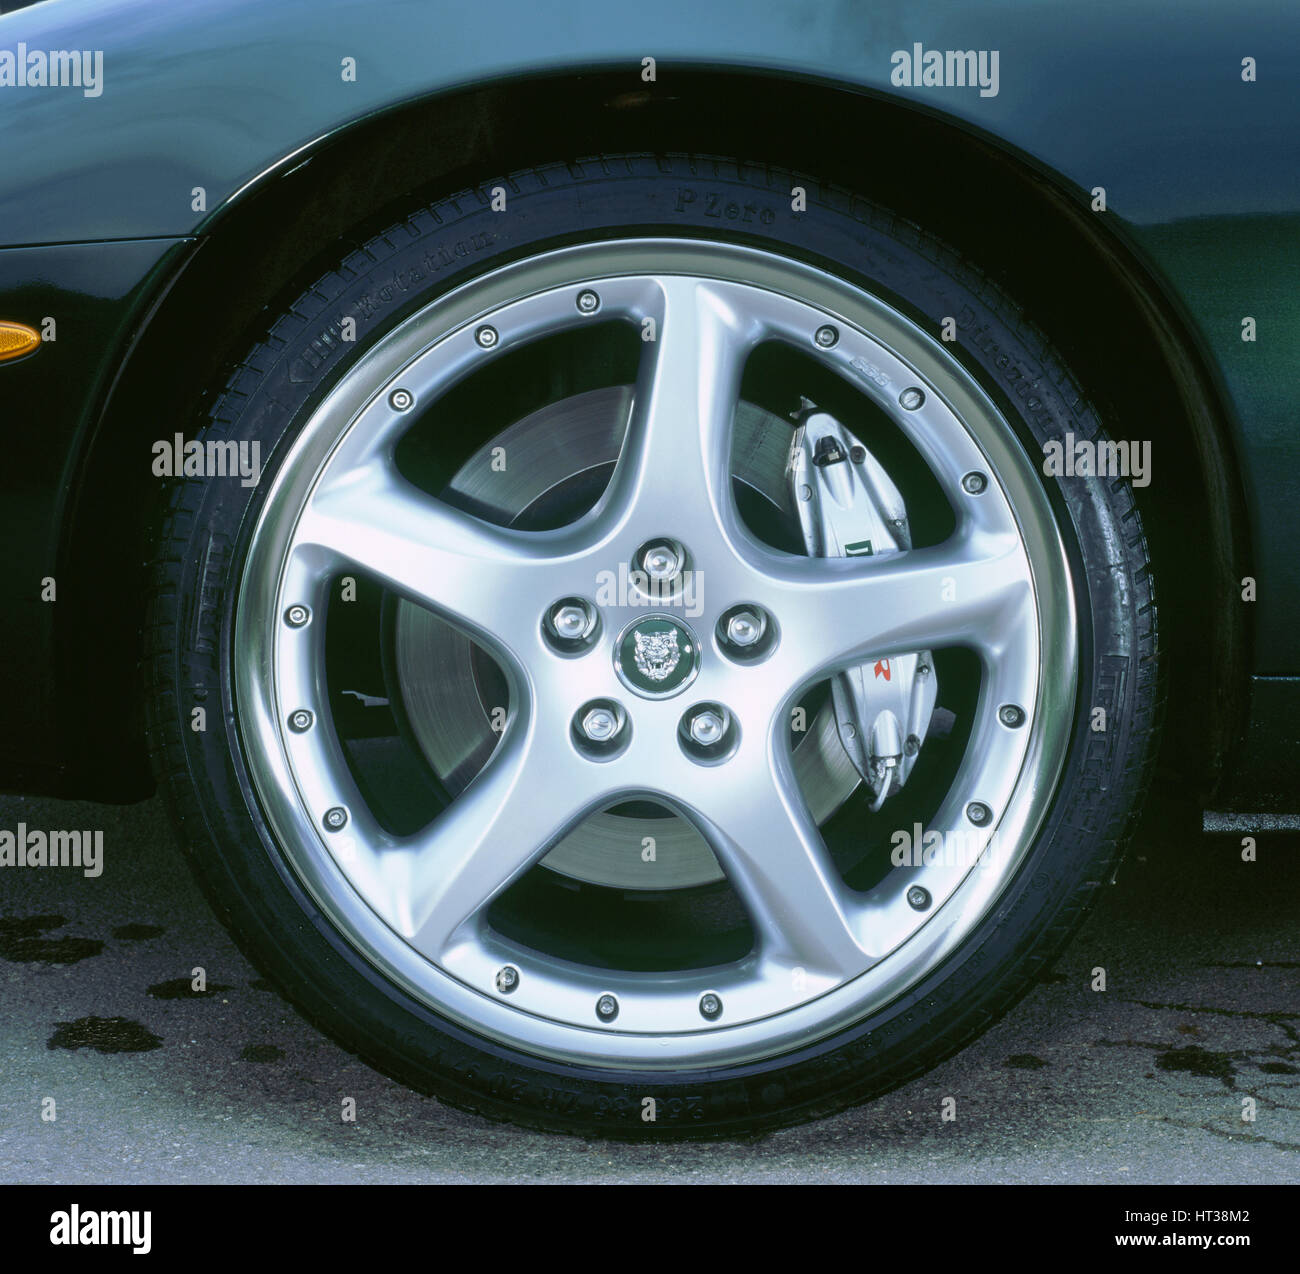 2002 Jaguar XKR convertible alloy wheel. Artist: Unknown. - Stock Image